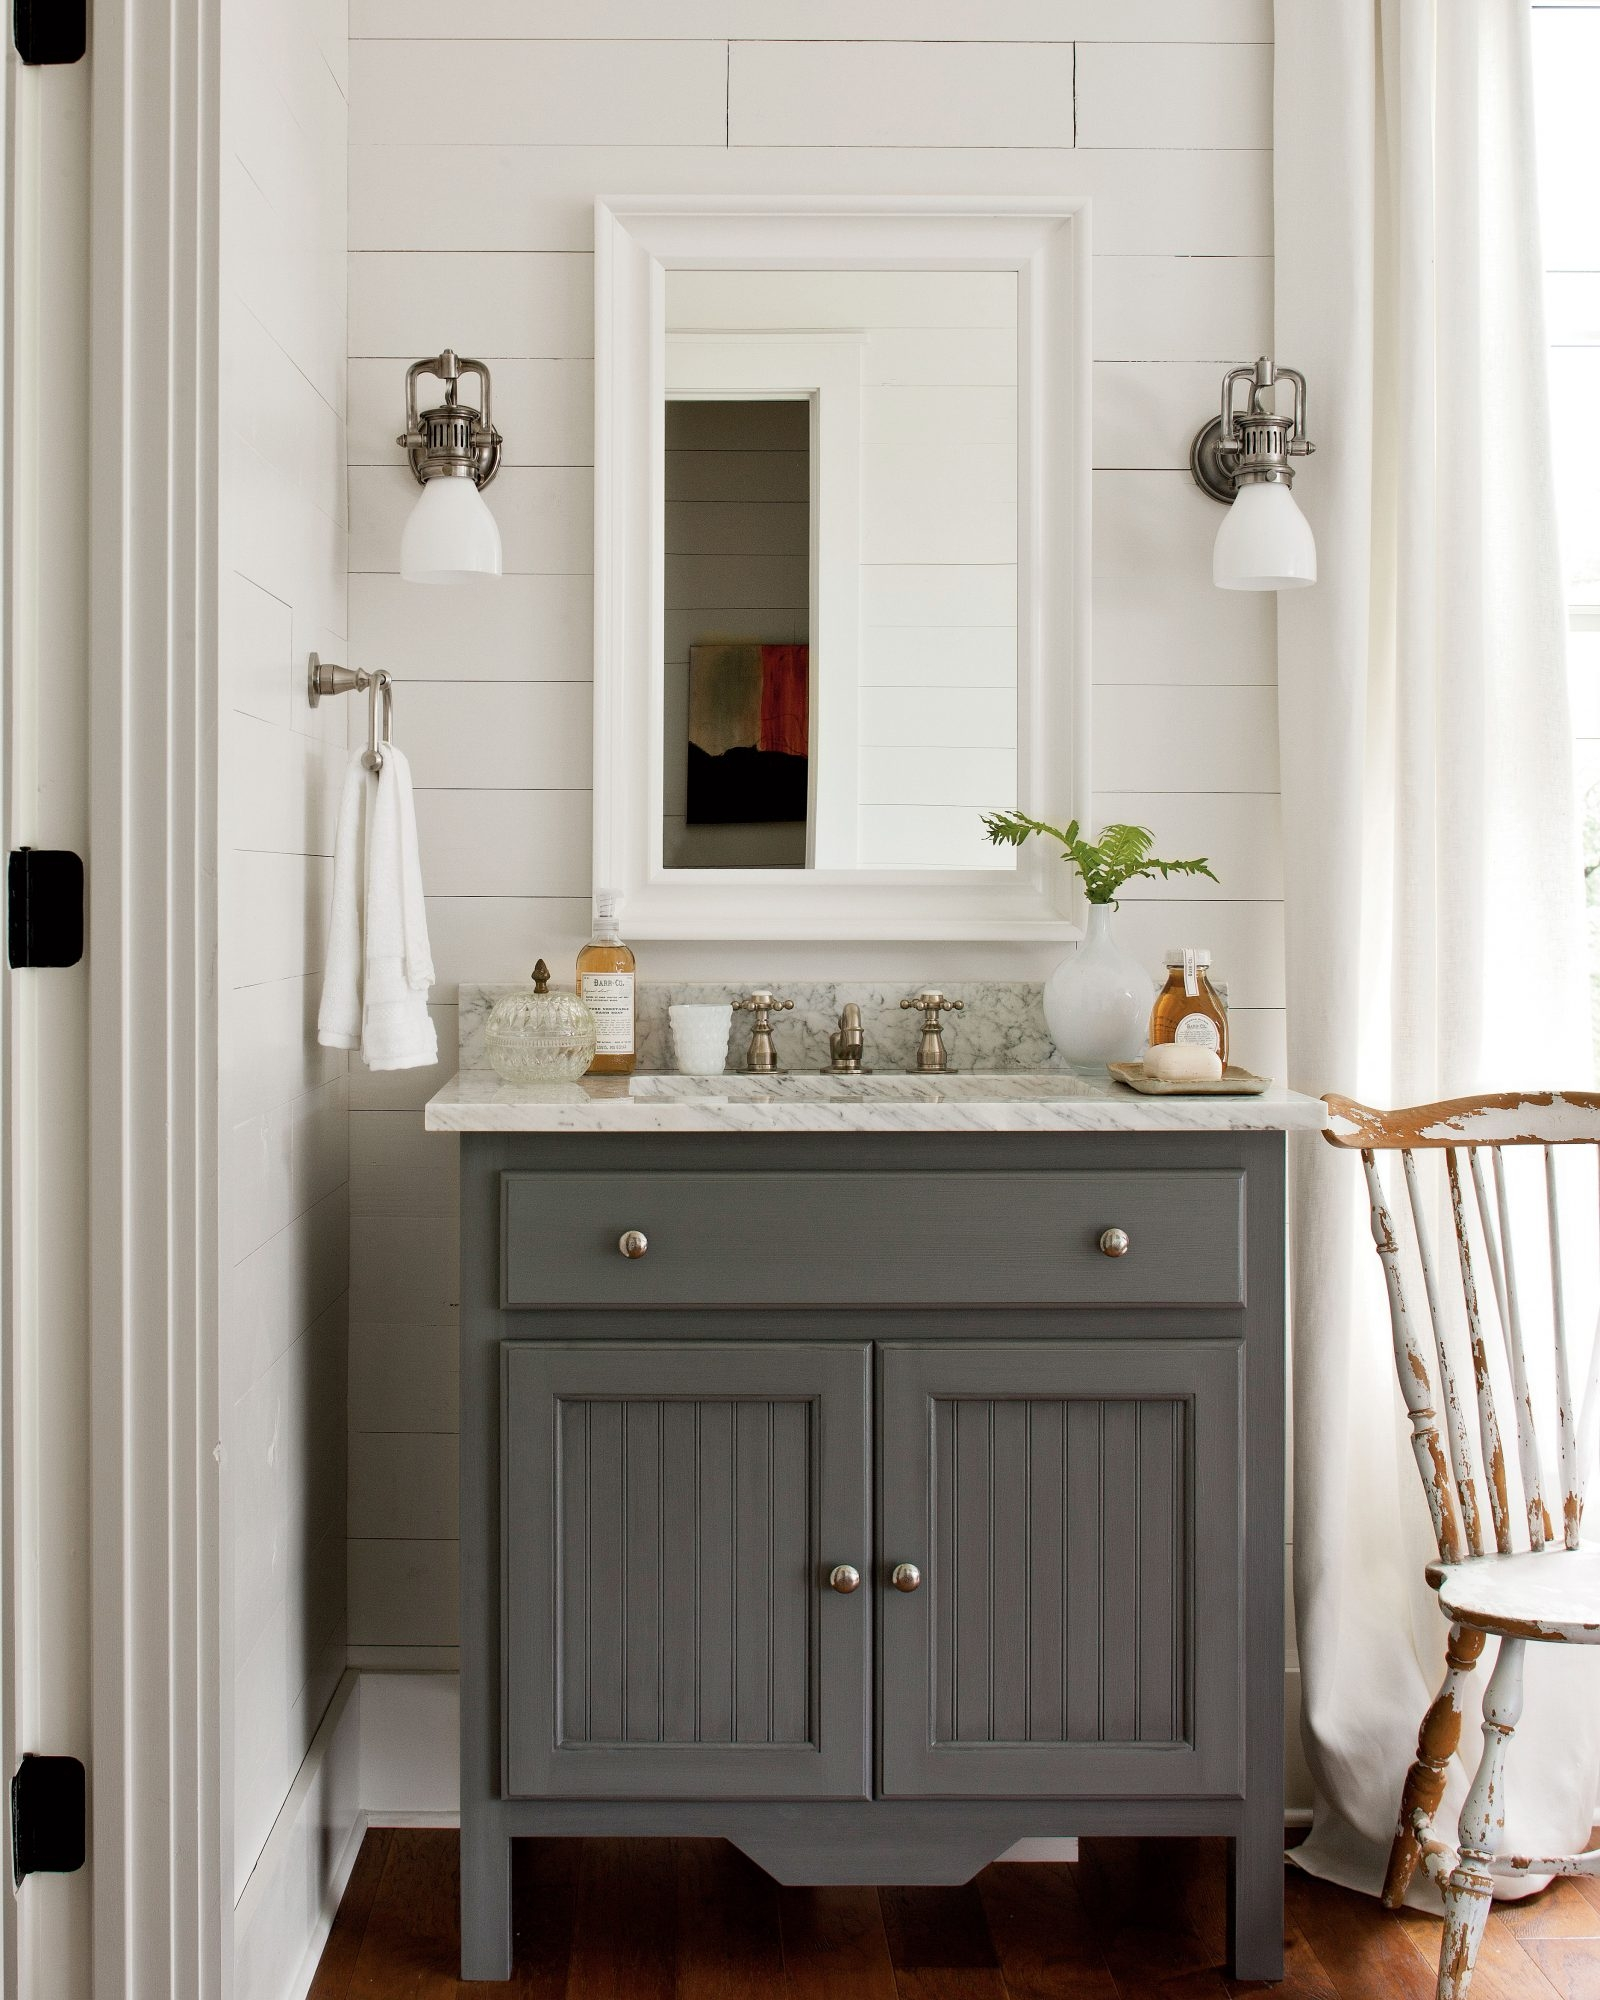 coastal bathroom vanities ideas on foter rh foter com Country Bathroom Storage Rustic Cottage Style Bathrooms